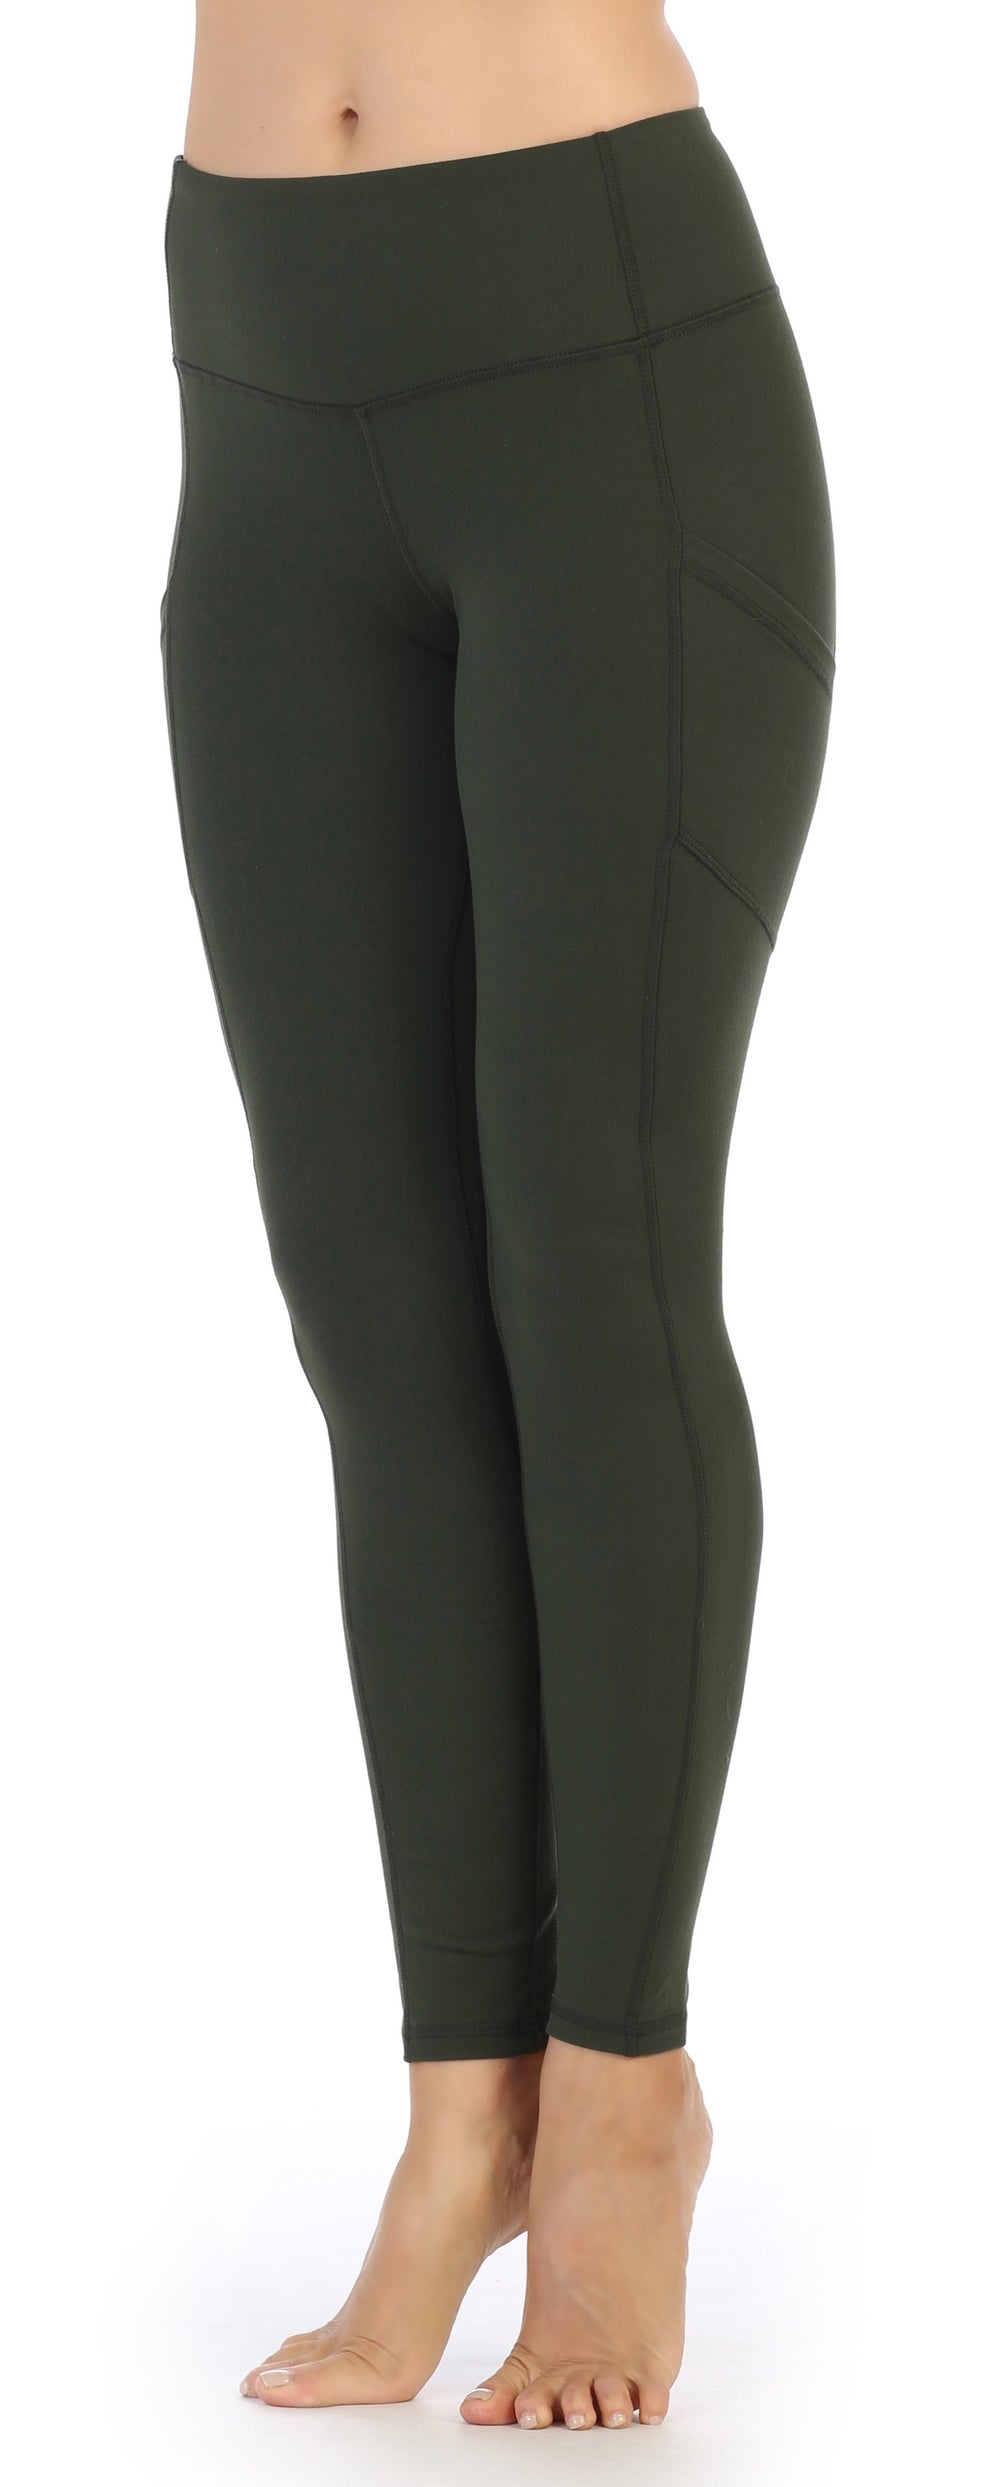 Olive-Womens Full Length Pocket Compression Leggings High Waisted-front